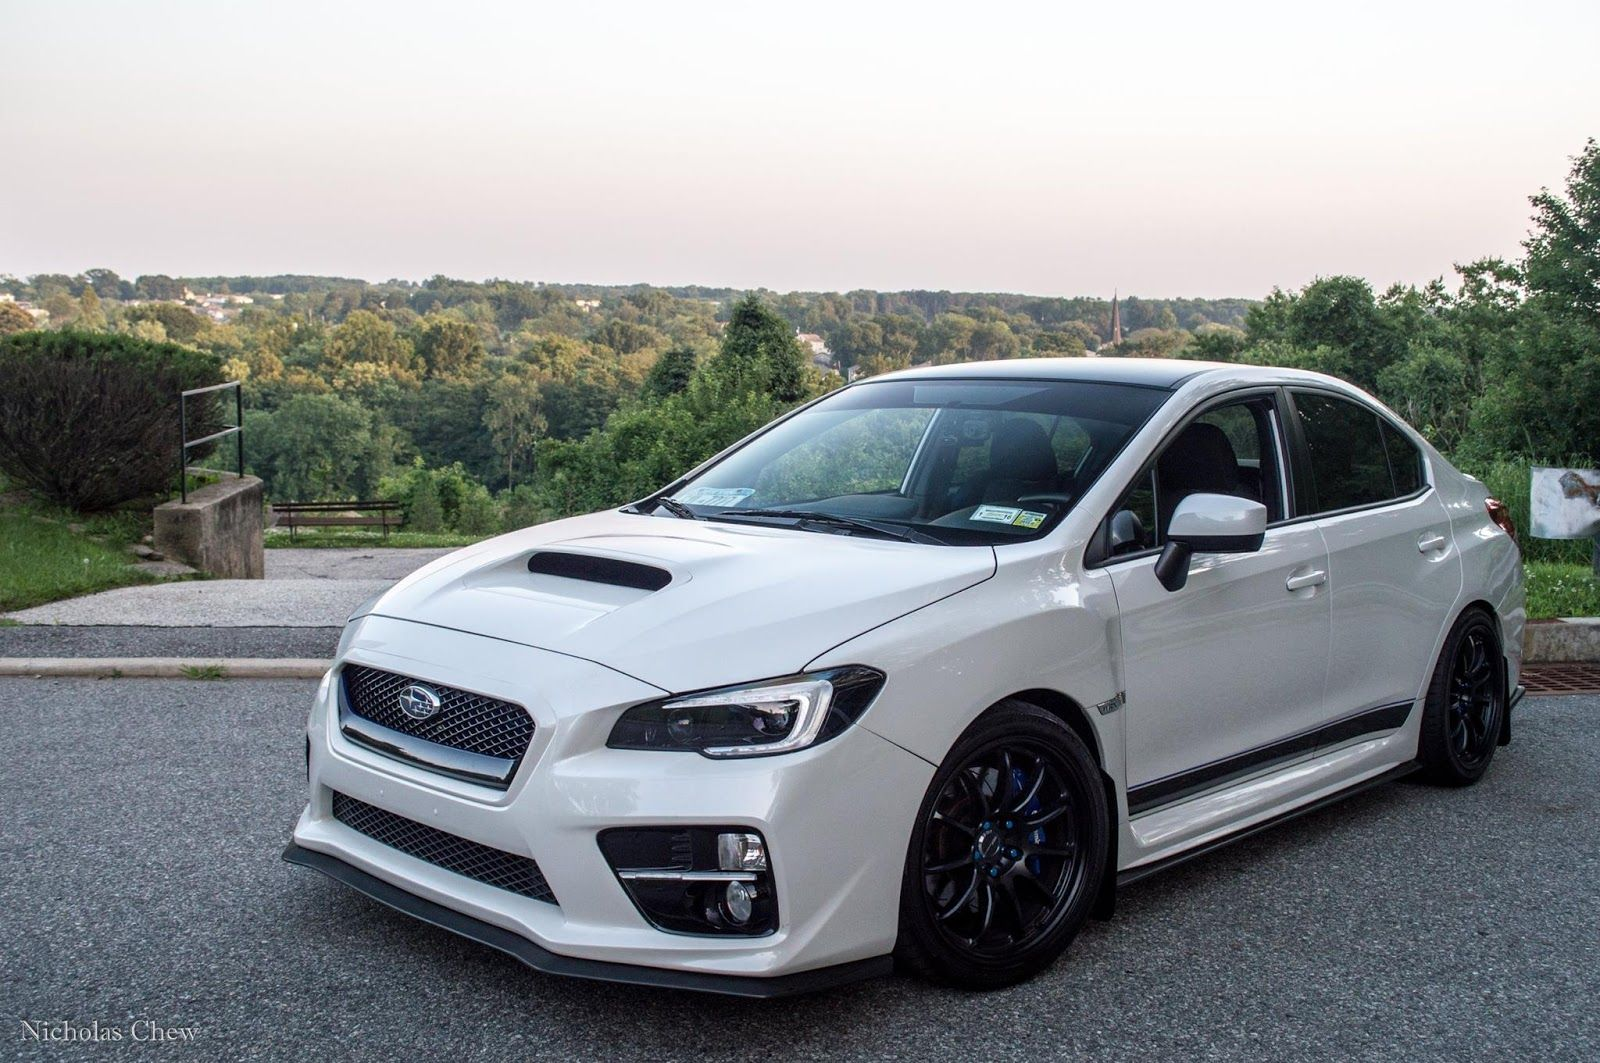 Clean Looking White Subaru Wrx 2017 W Nice Alloy Rims Check It Out Subie Gallery